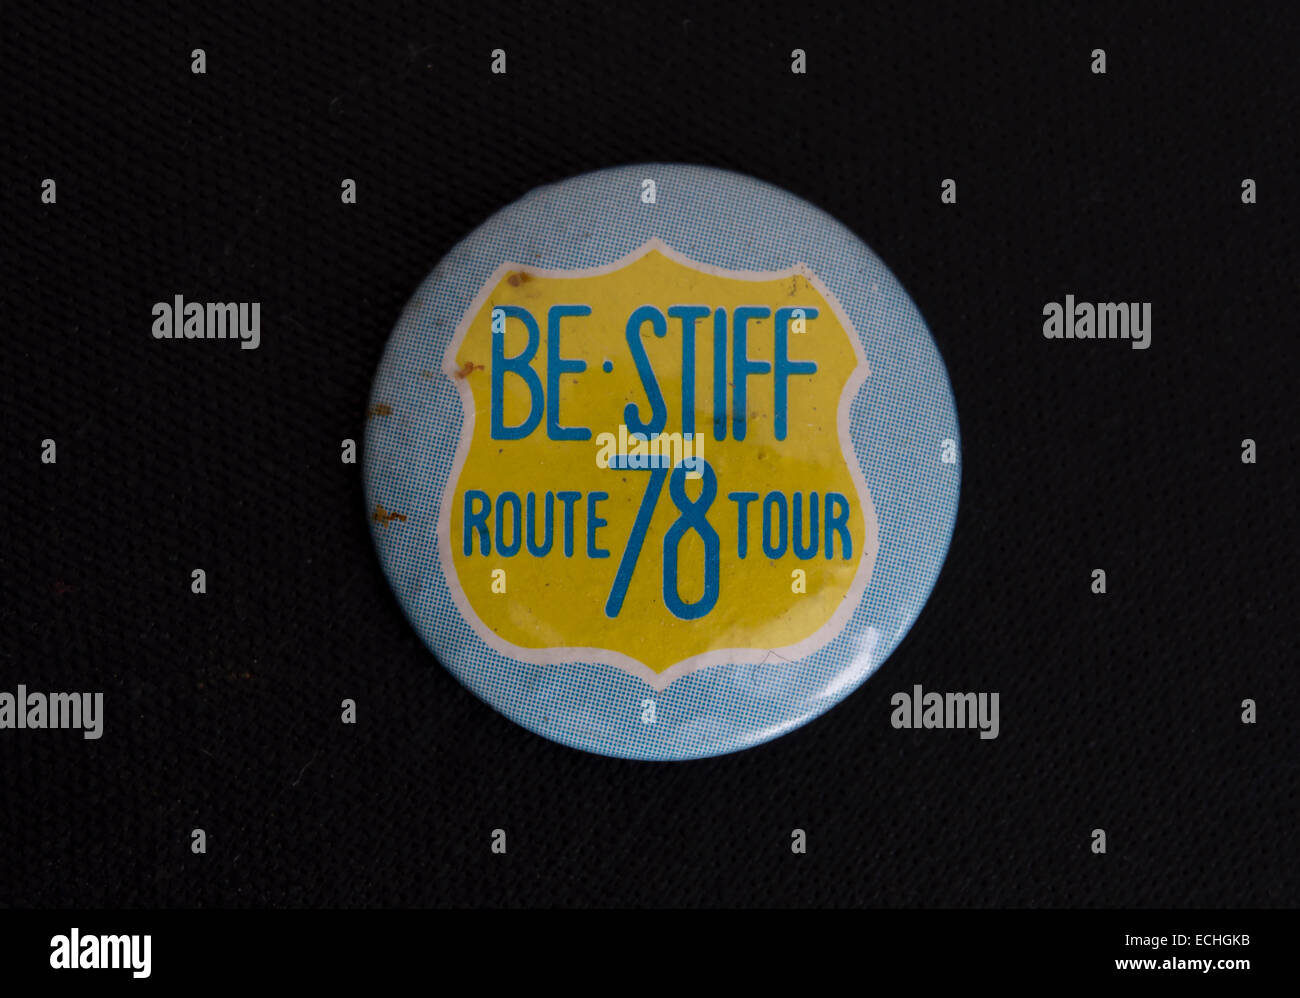 lapel badge souvenir of the 1978 be stiff route 78 tour, featuring bands signed to stiff records - Stock Image